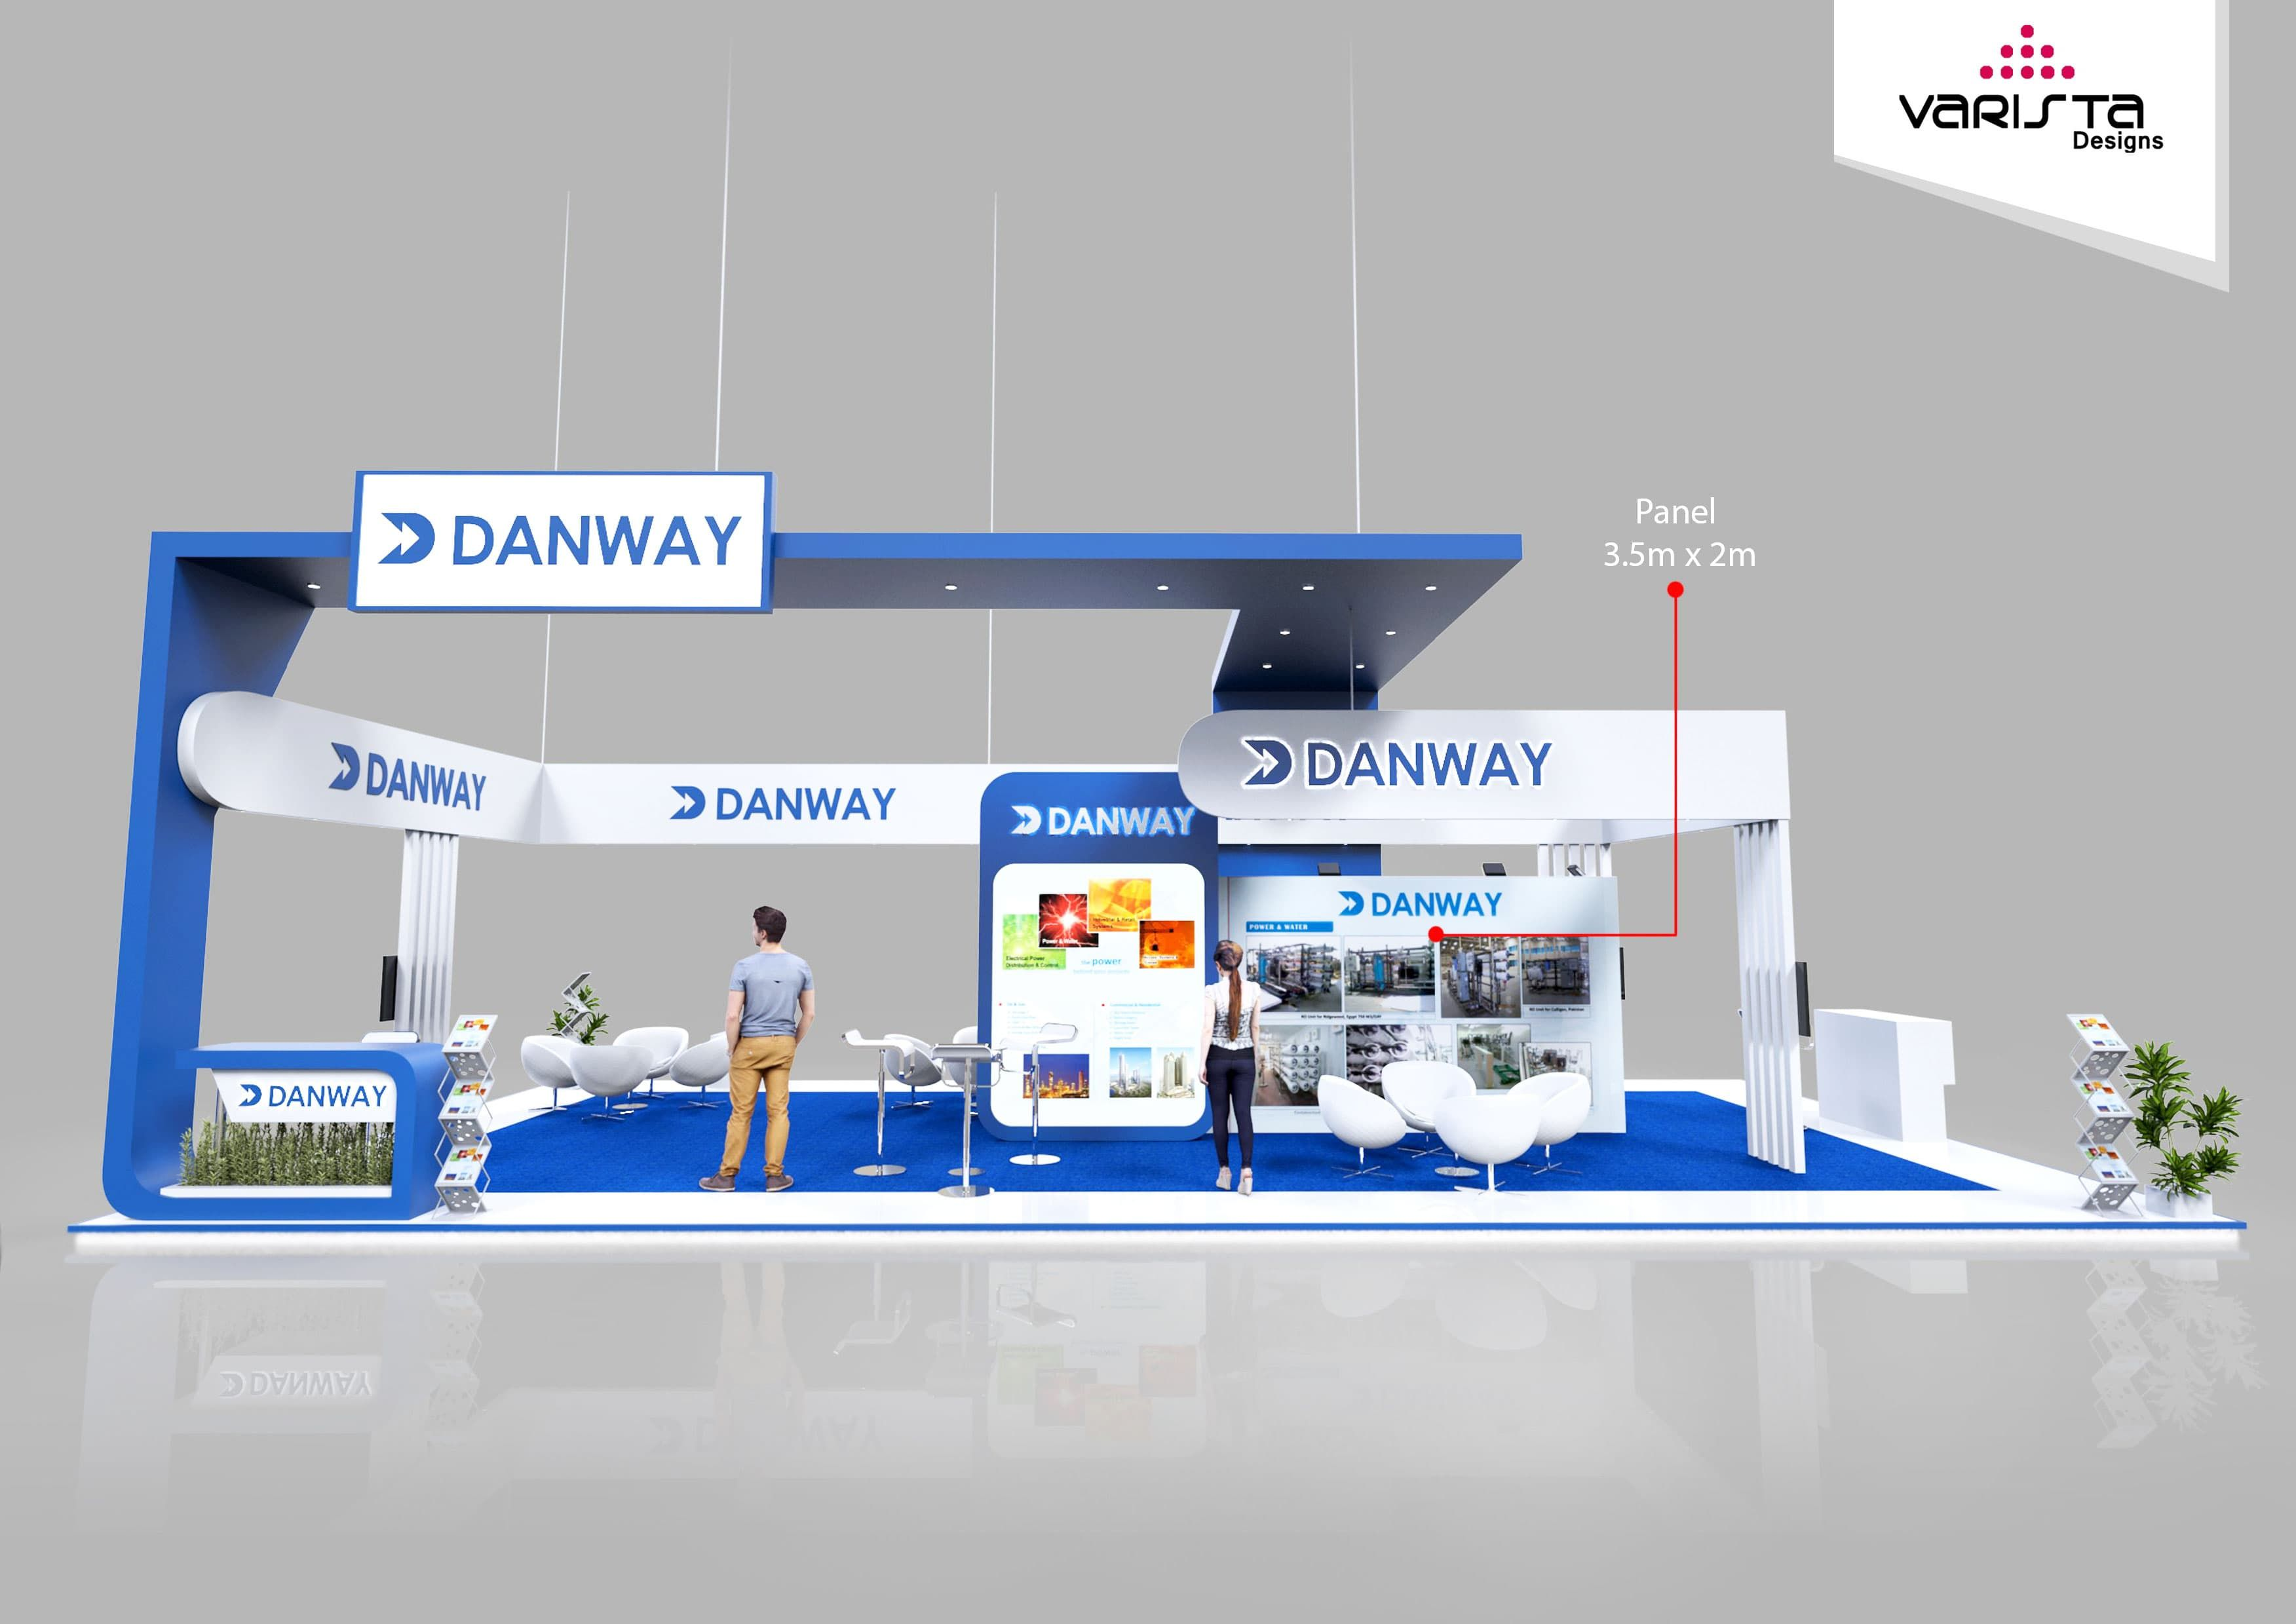 Design Your Exhibition Stand : Exhibition stand design proposal for danway be a part of your